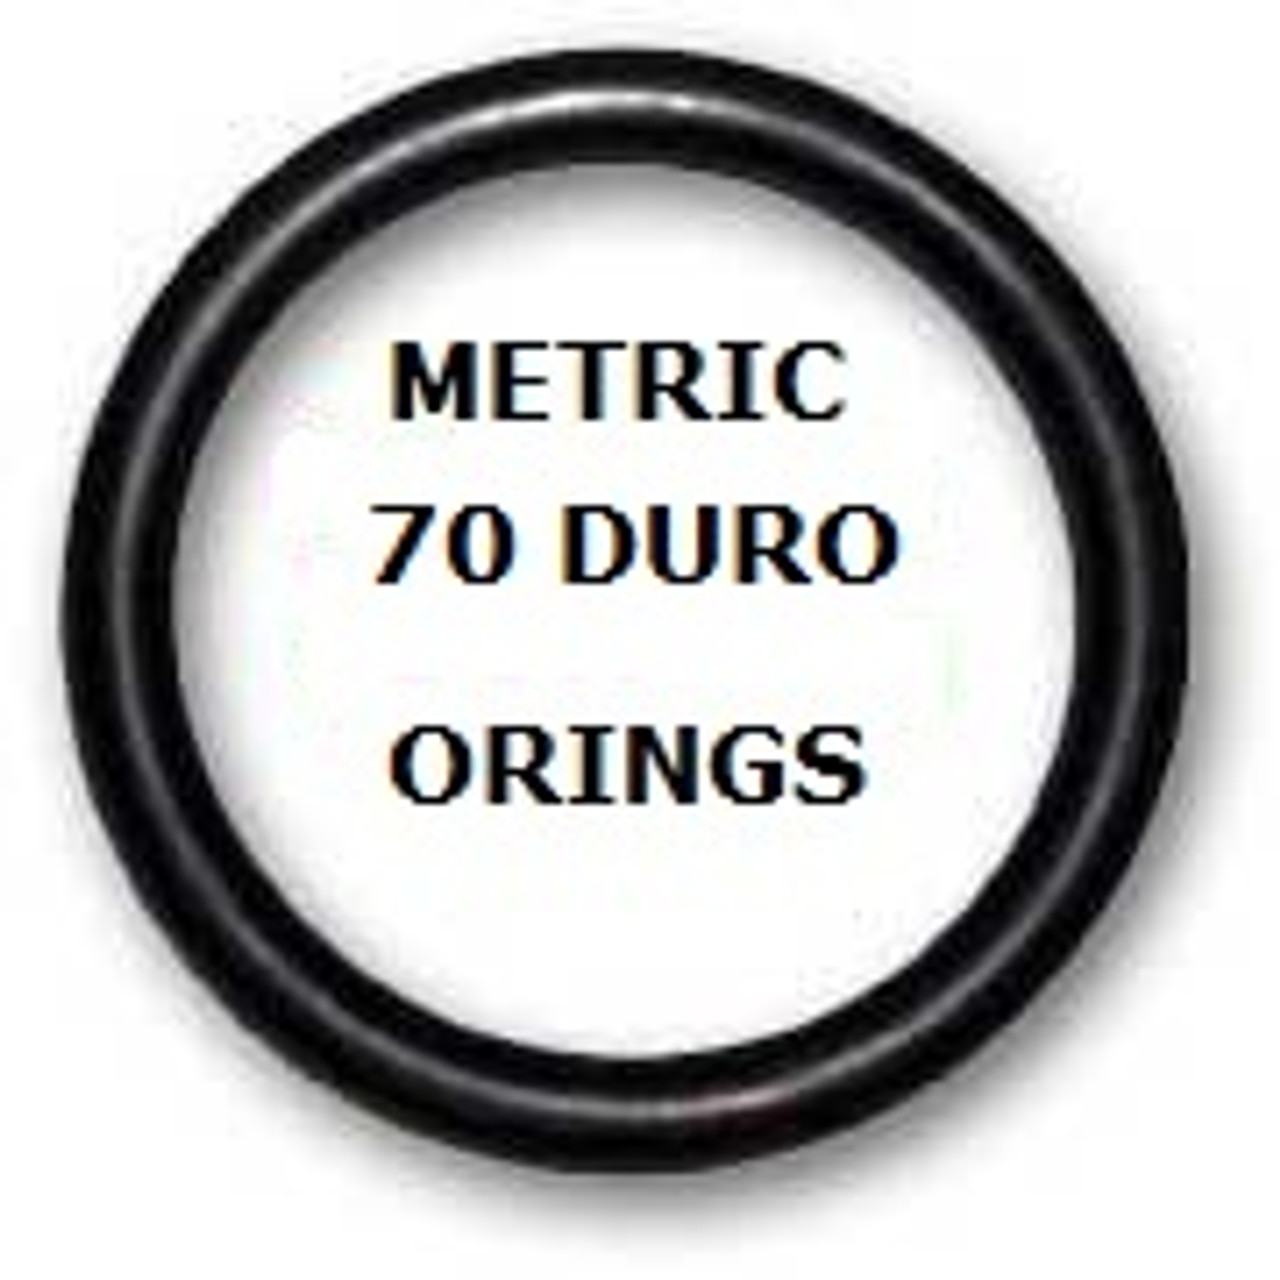 Metric Buna  O-rings 7 x 1mm Price for 50 pcs